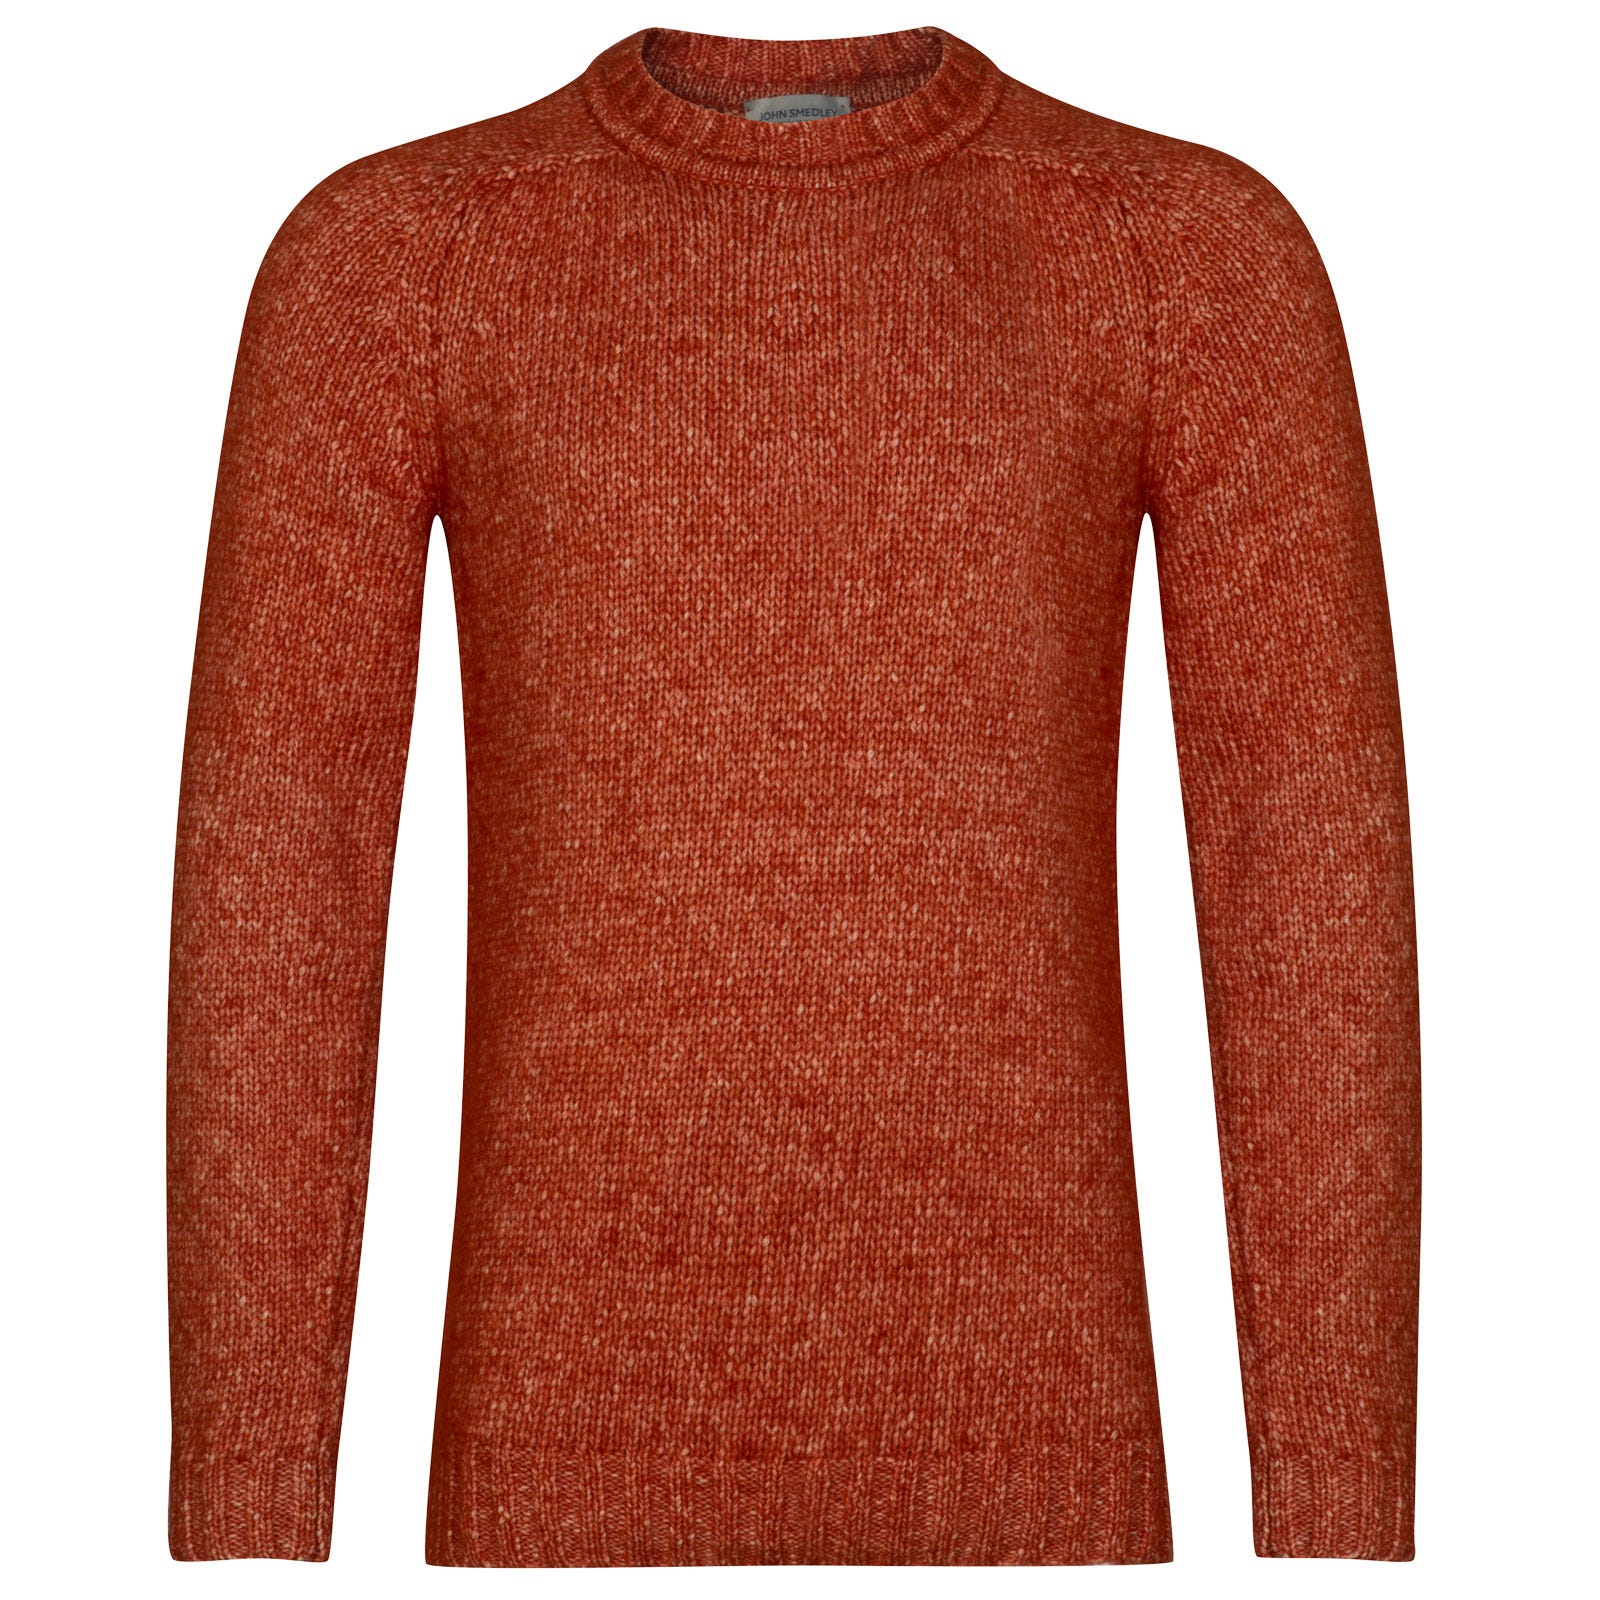 John Smedley storr Alpaca, Wool & Cotton Pullover in Flare Orange-L